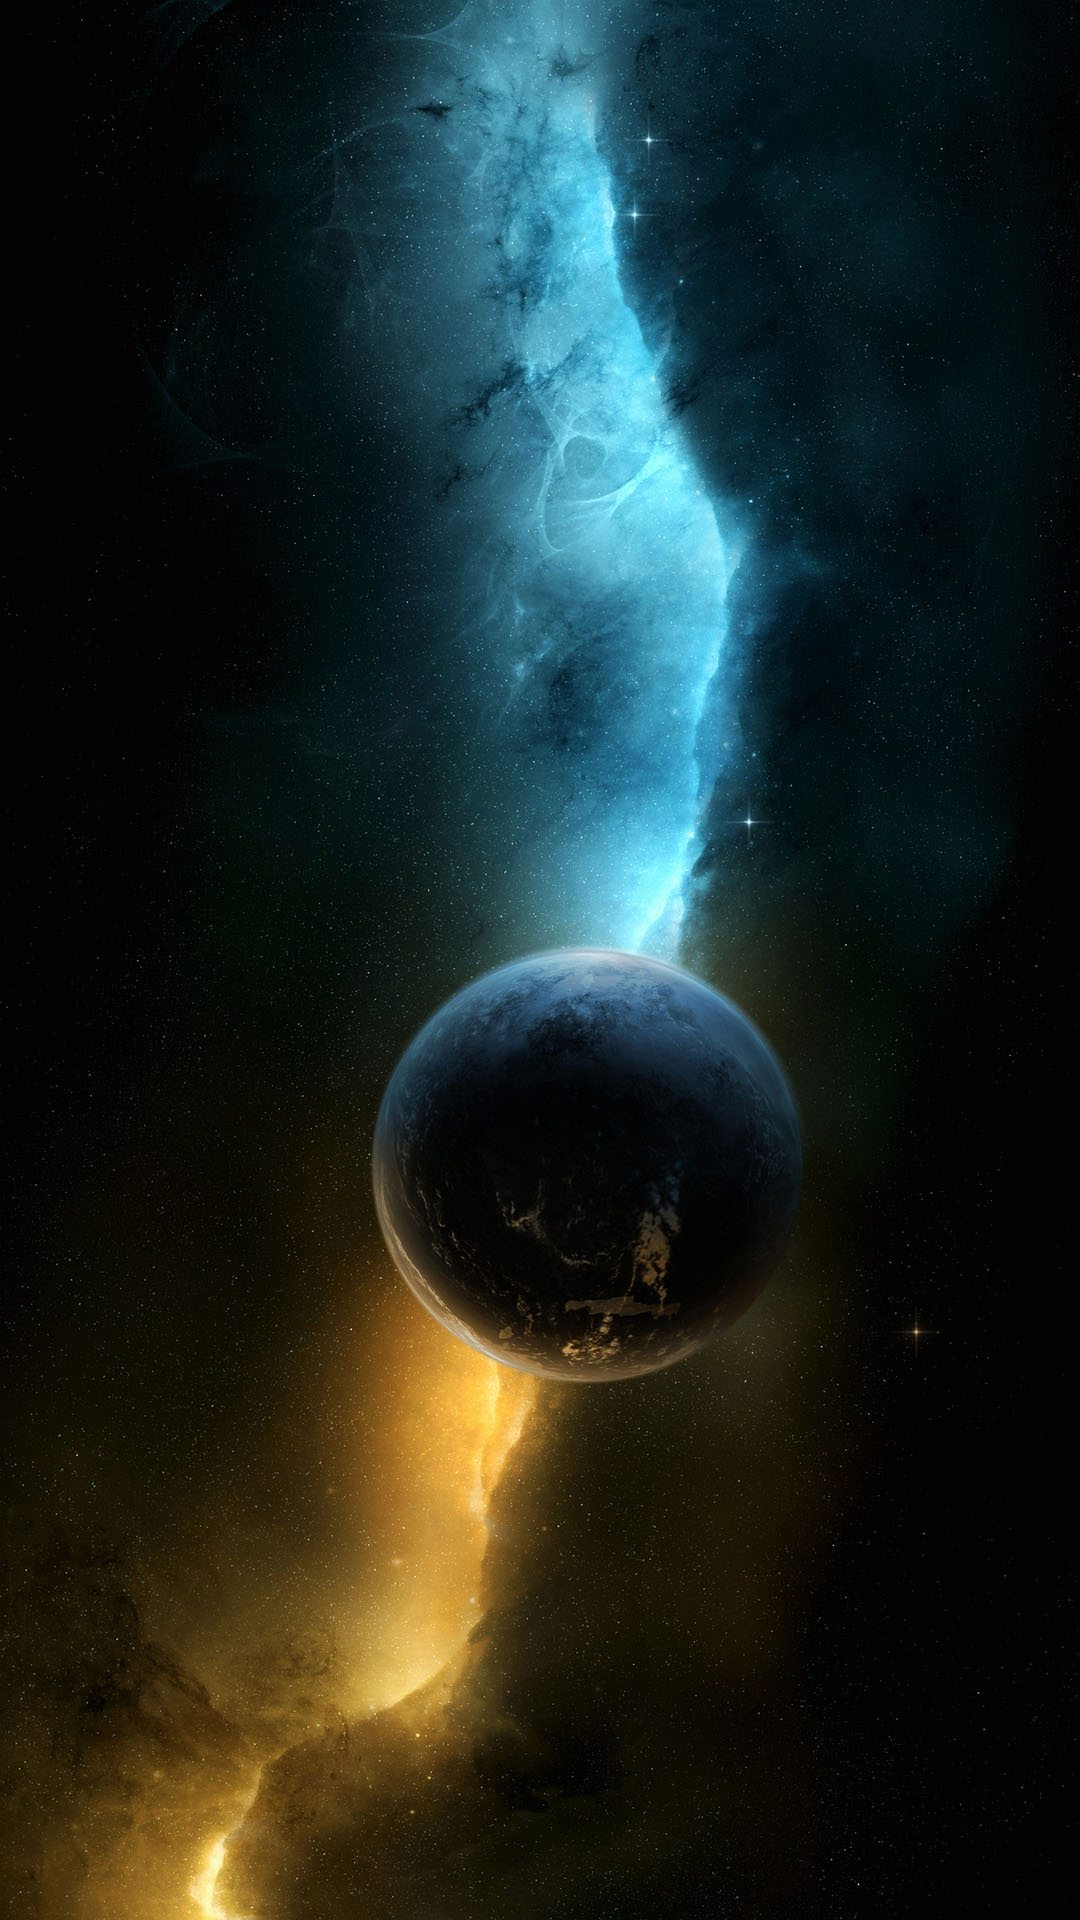 wallpaper full hd 1080 x 1920 smartphone space alone planet